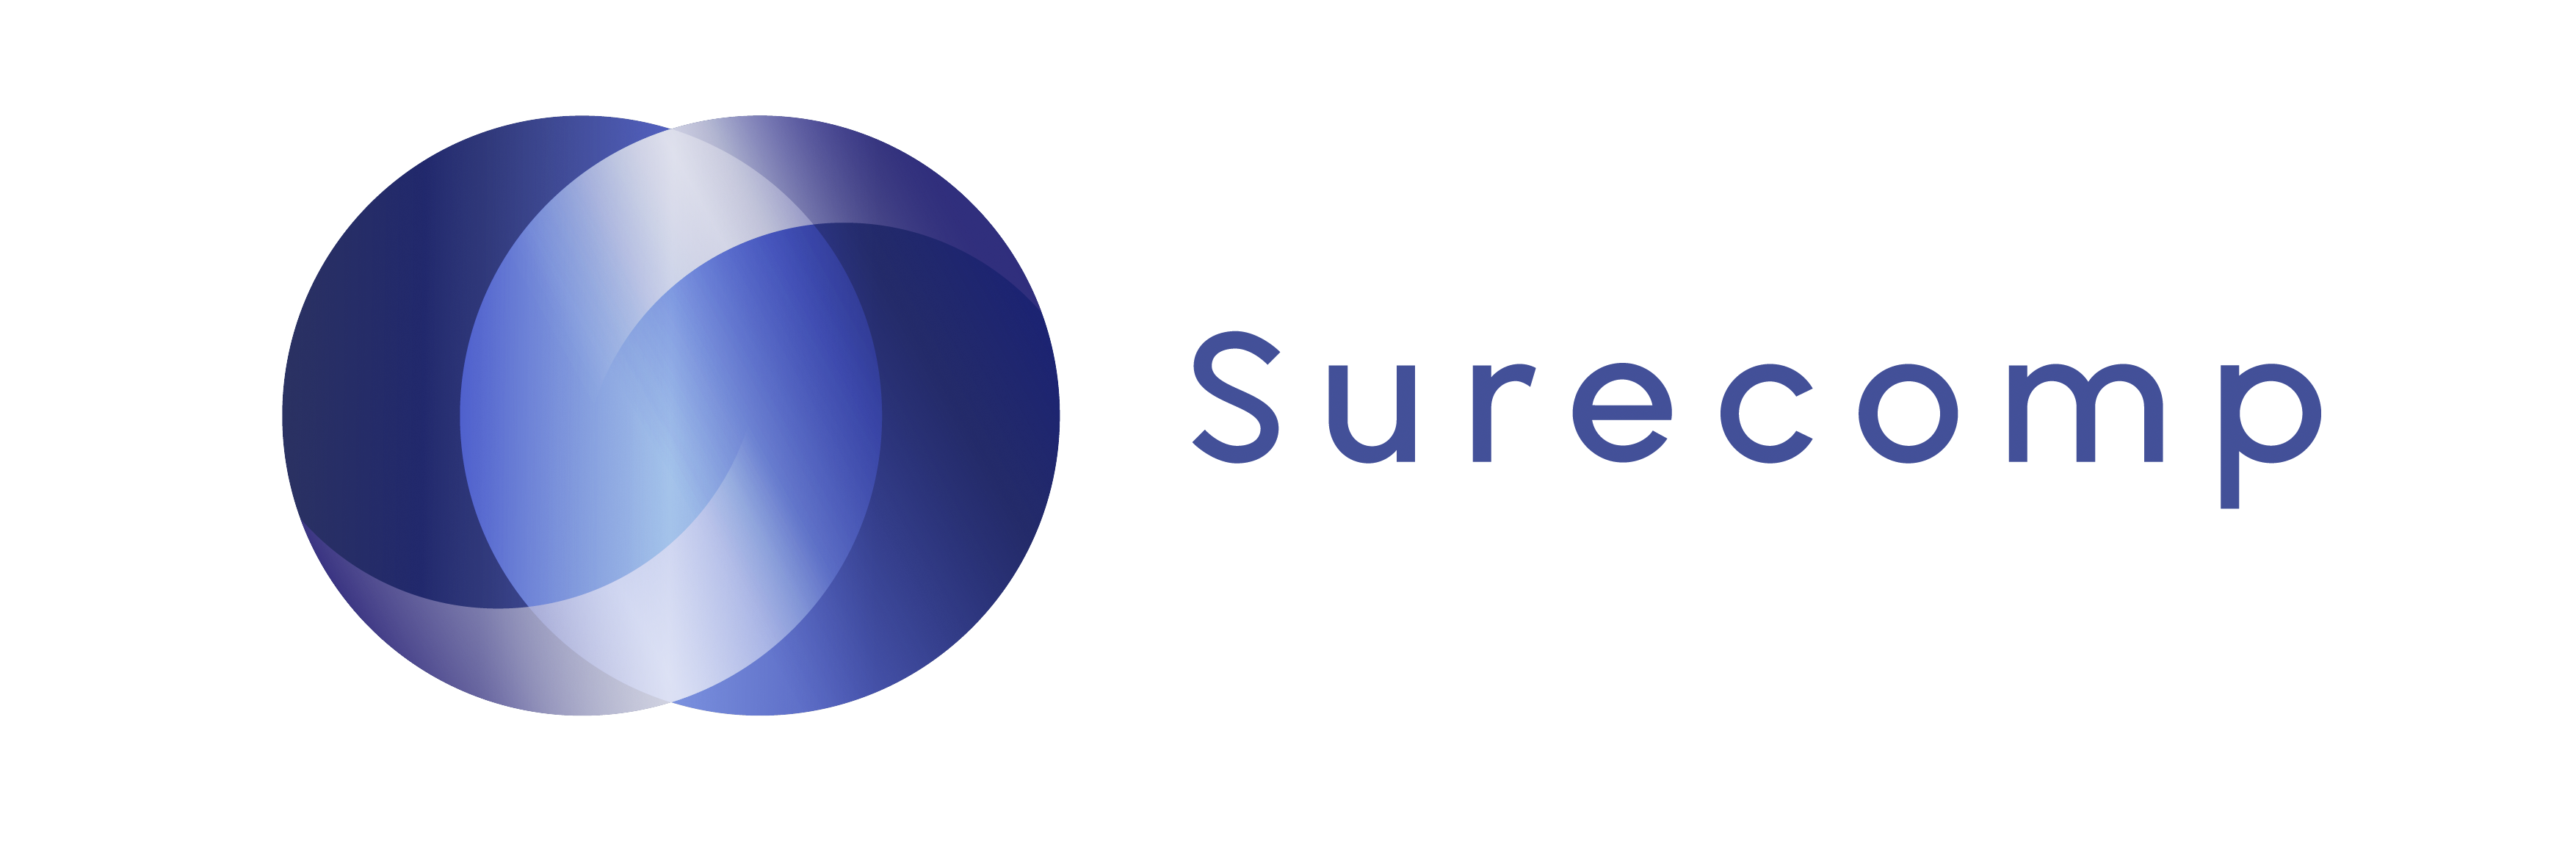 DZ BANK Trusts Surecomp in Its Digital Trade Finance Transformation Journey